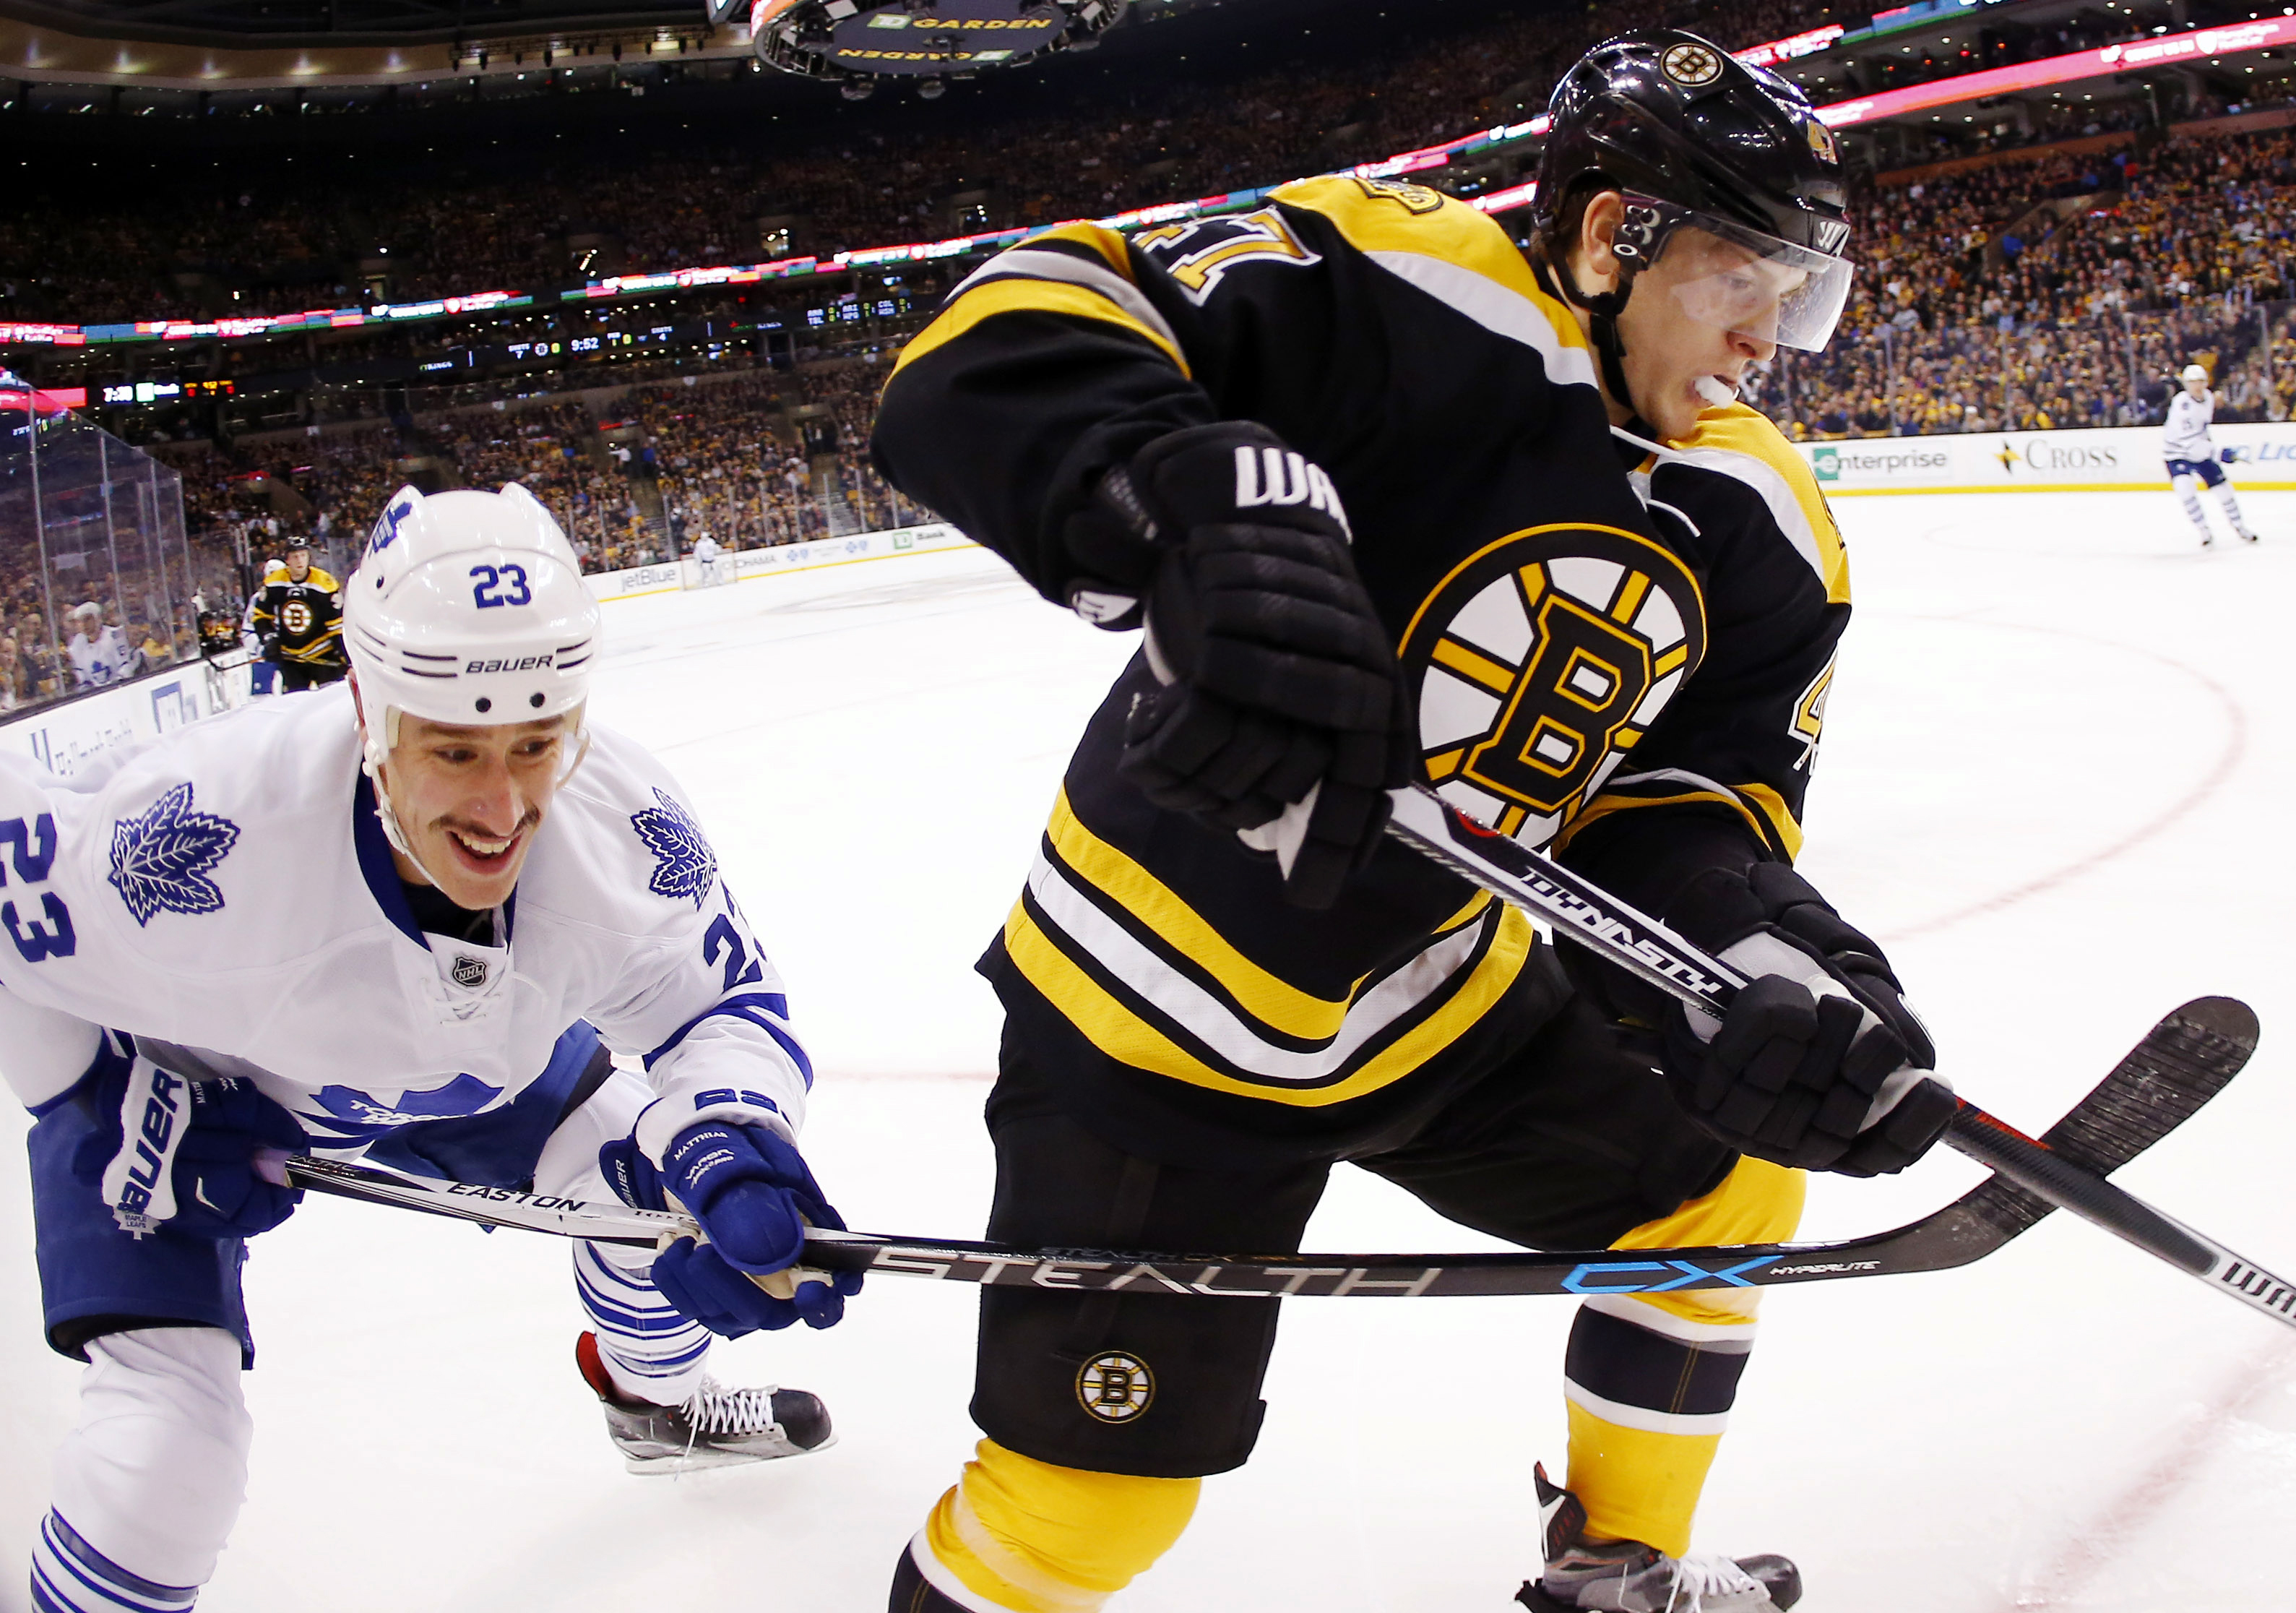 Toronto Maple Leafs' Shawn Matthias (23) battles Boston Bruins' Torey Krug during the first period of an NHL hockey game in Boston, Saturday, Nov. 21, 2015. (AP Photo/Winslow Townson)